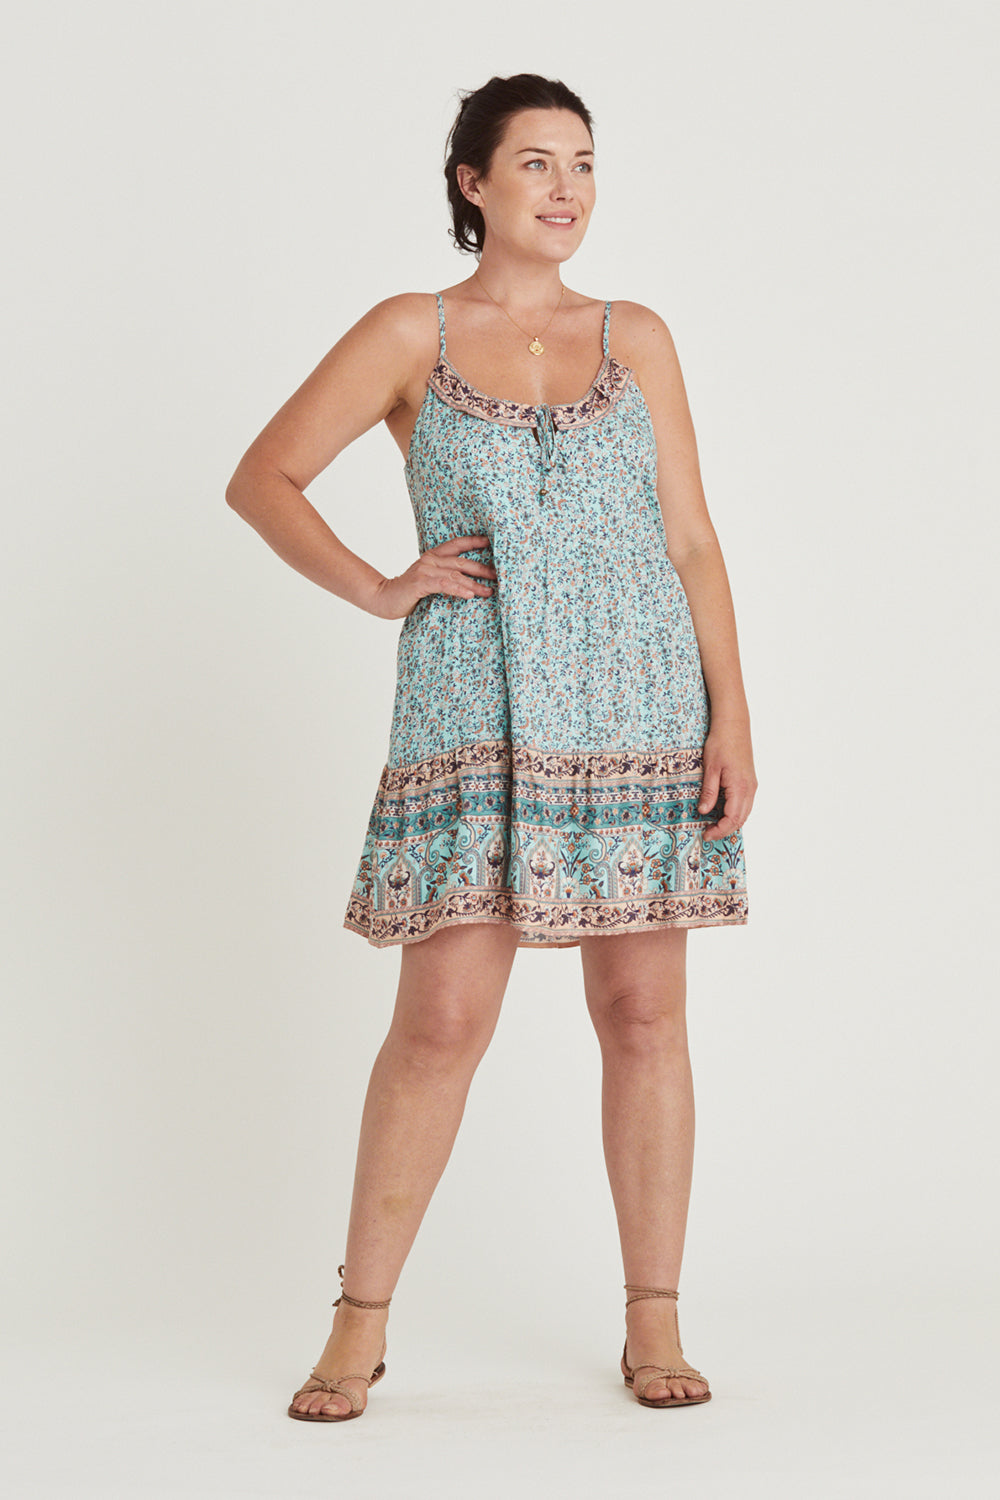 Island Mini Dress in Lagoon